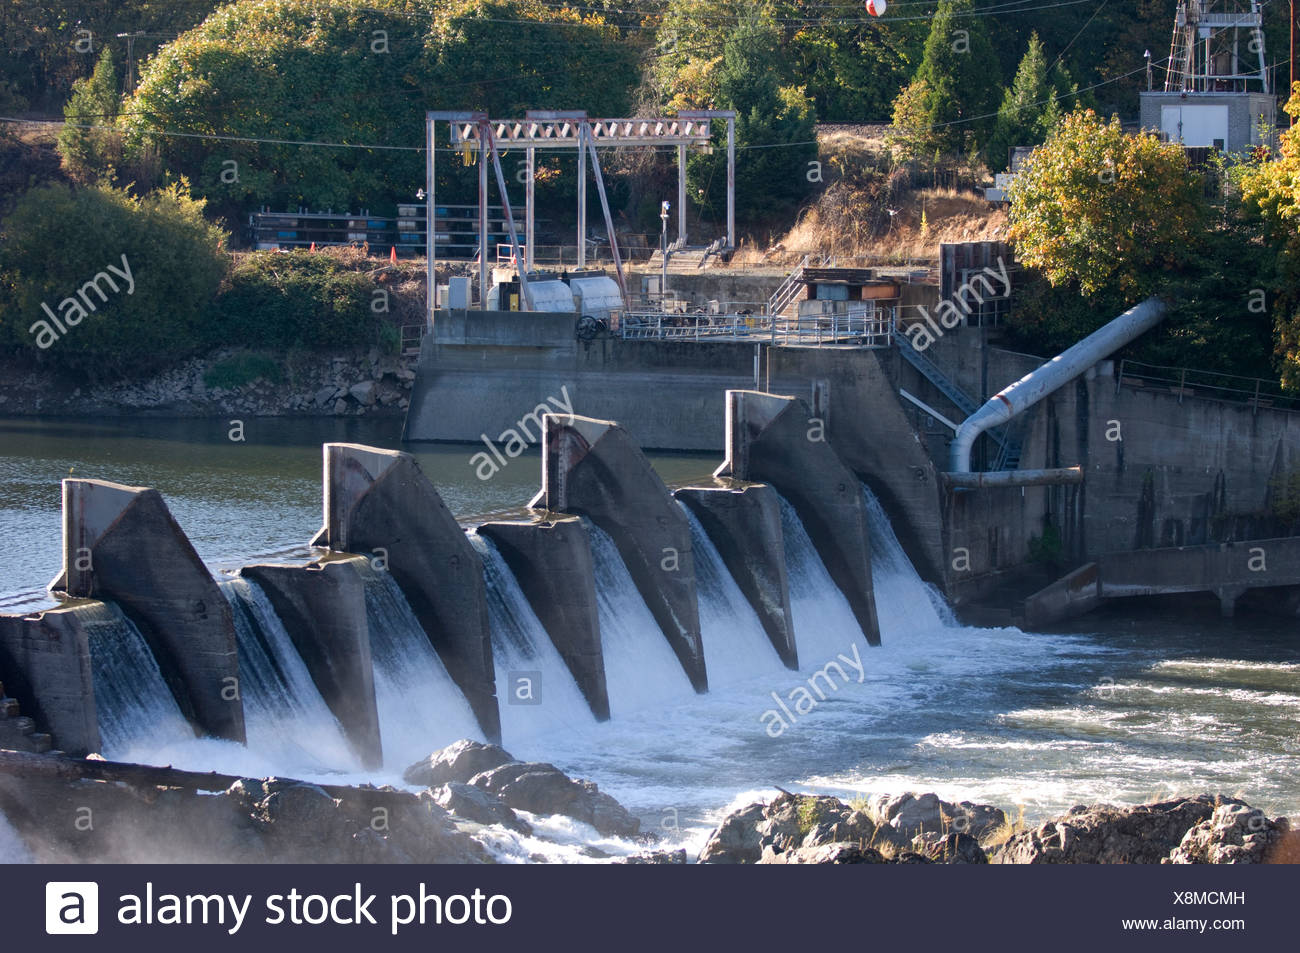 Savage Rapids Dam, which is slated to be removed from the Rogue River. - Stock Image